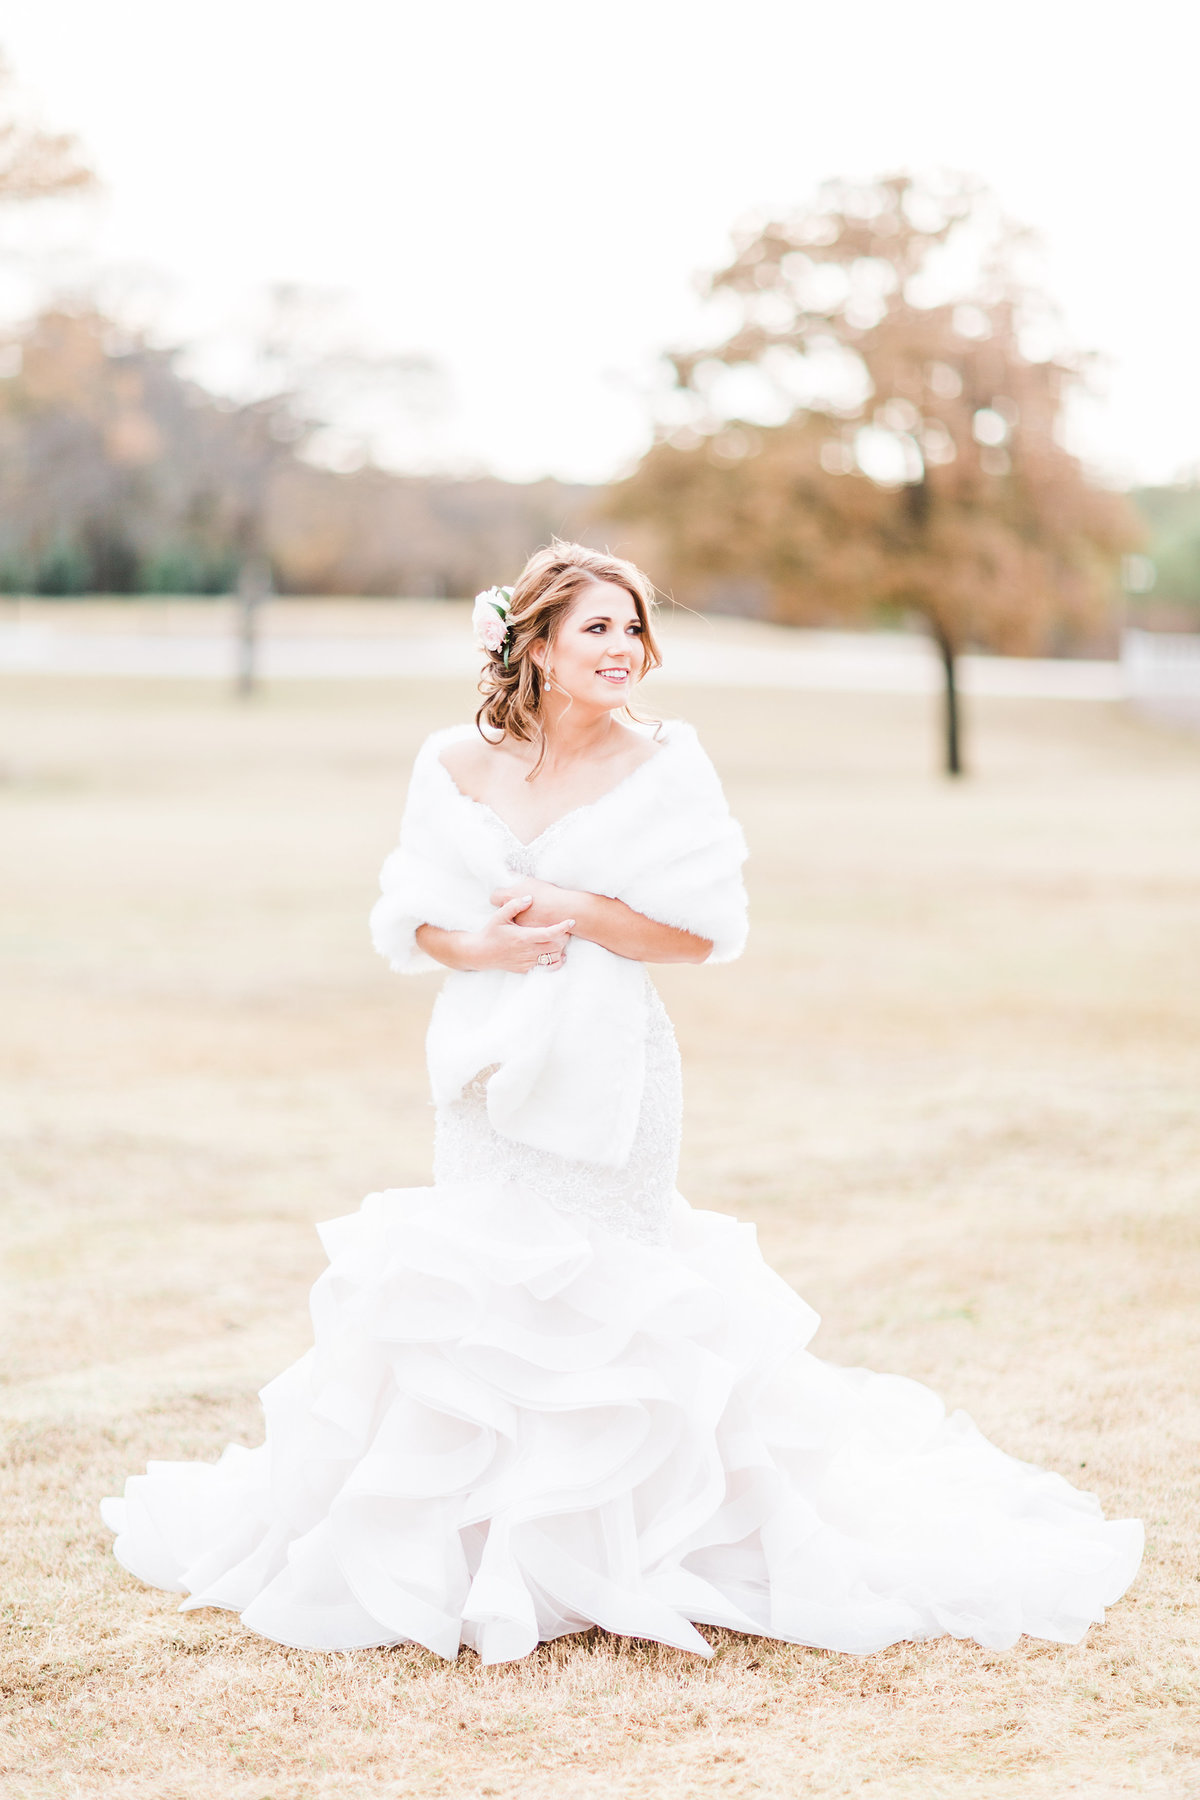 Aubry Texas Milestone Walters Wedding Estates Photographer